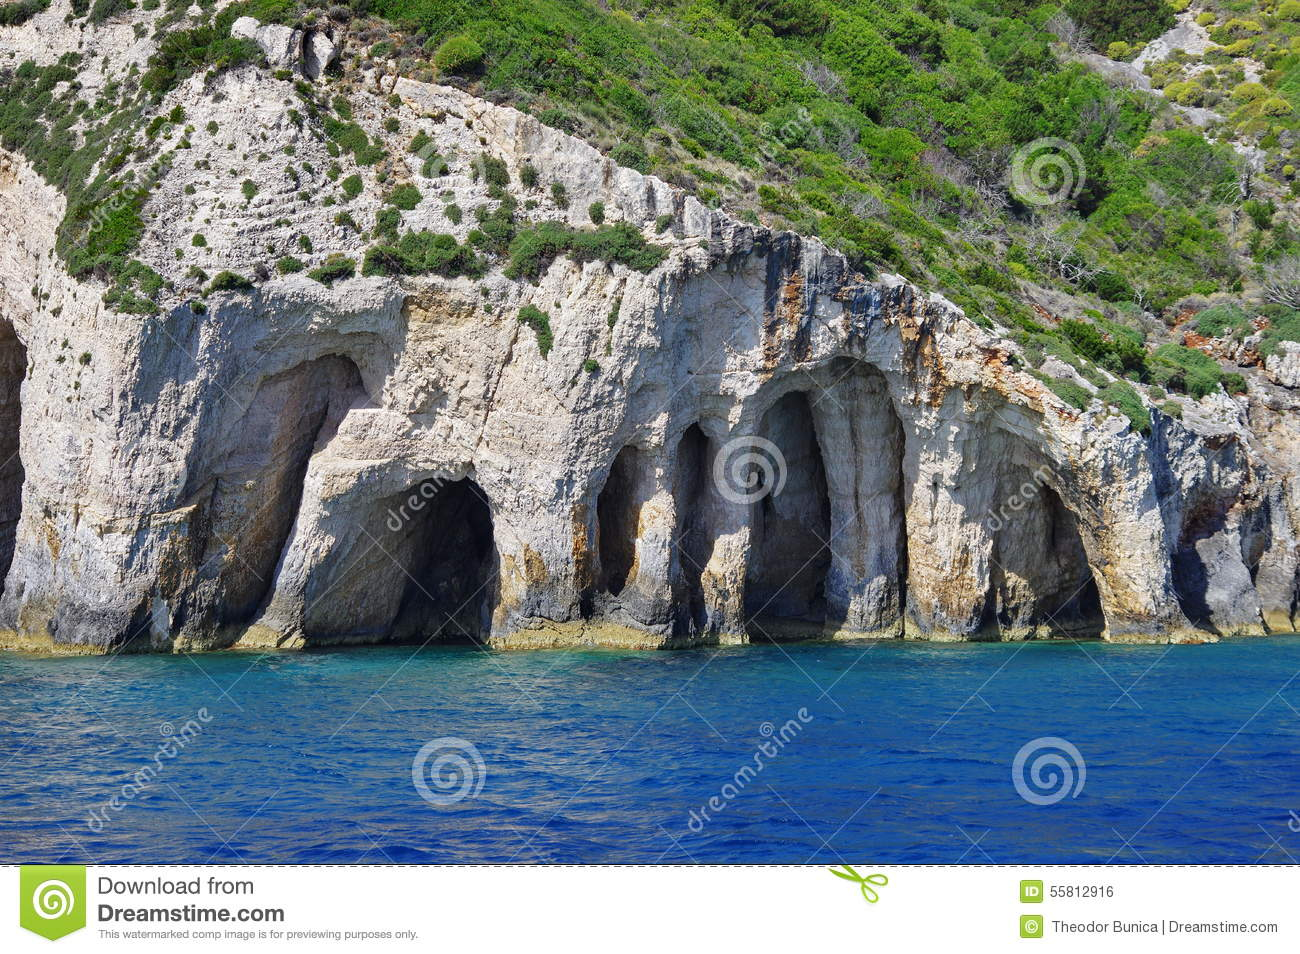 Blue Caves and Ionian Sea - Zakynthos Island, landmark attraction in Greece. Seascape